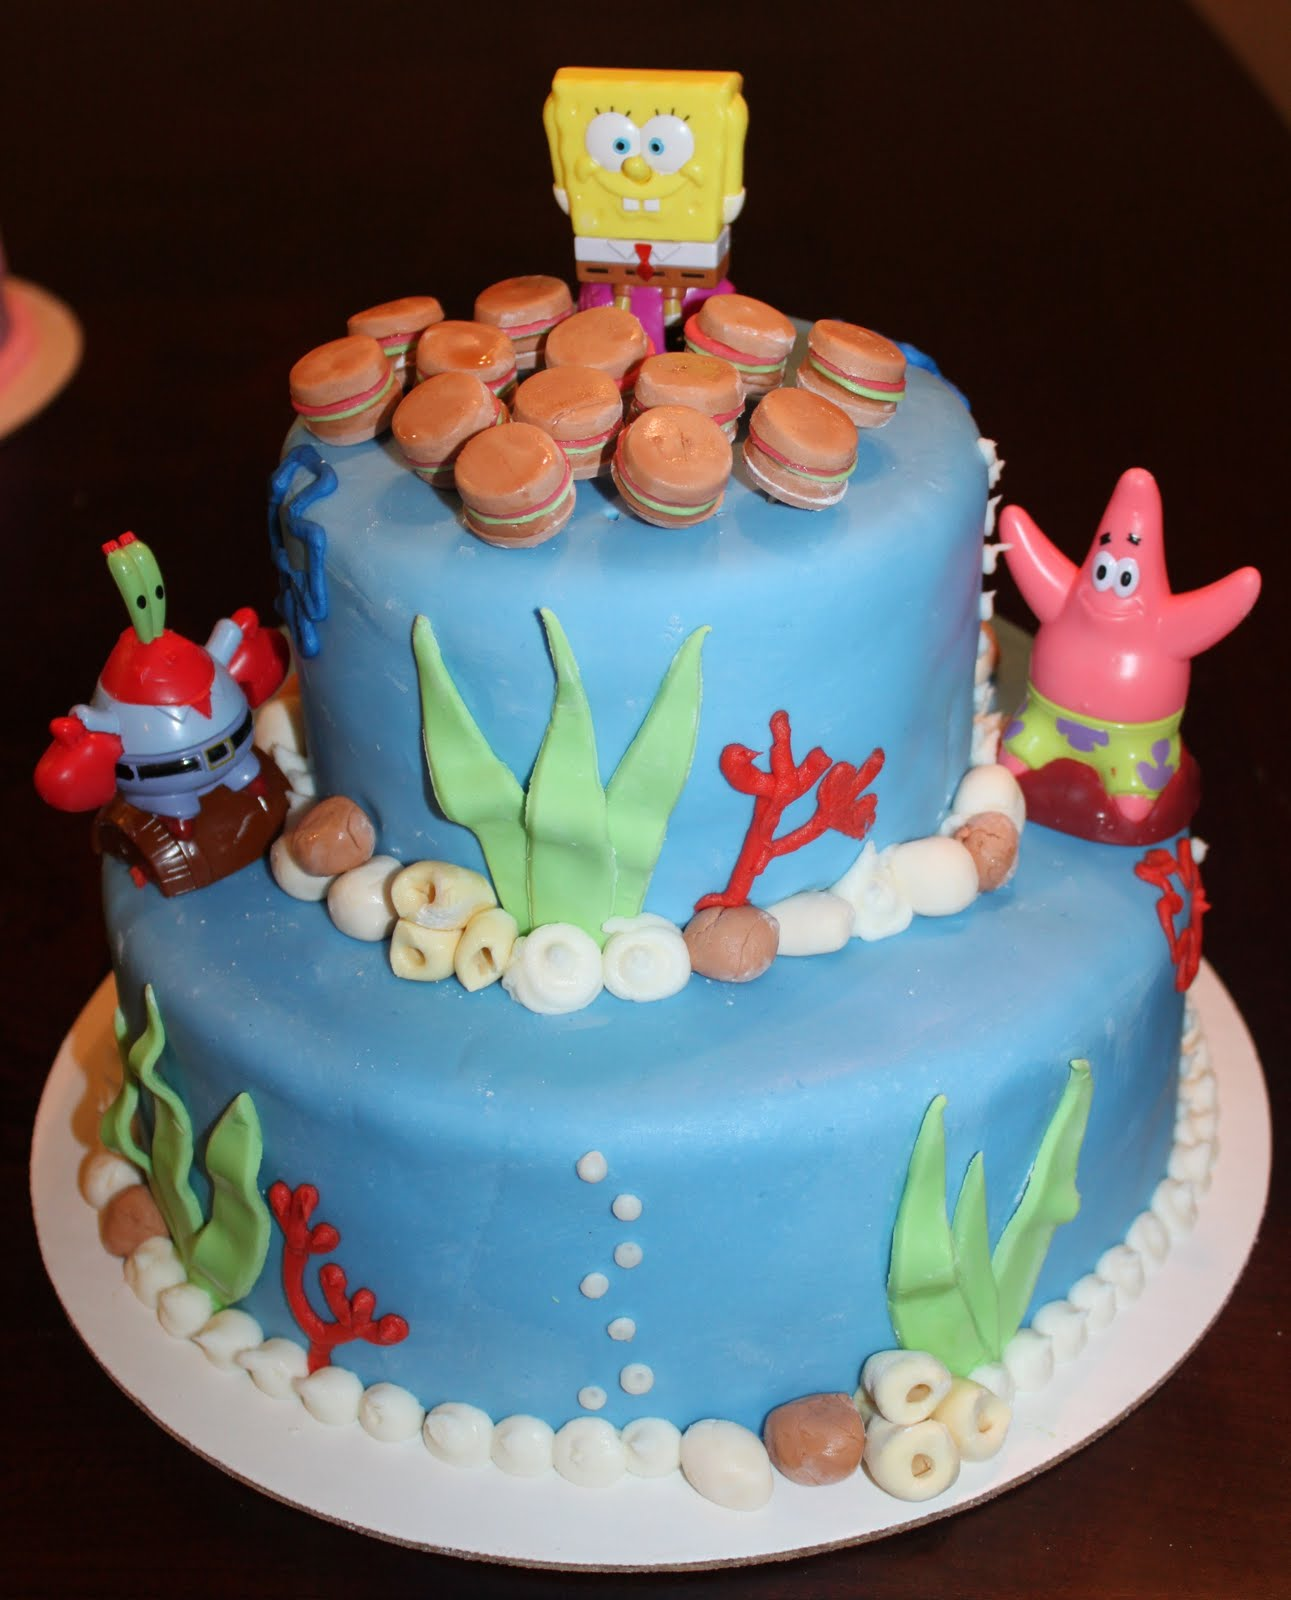 Kroger Cakes http://community.babycenter.com/post/a35128087/custom_cakes_based_on_licensed_characters.